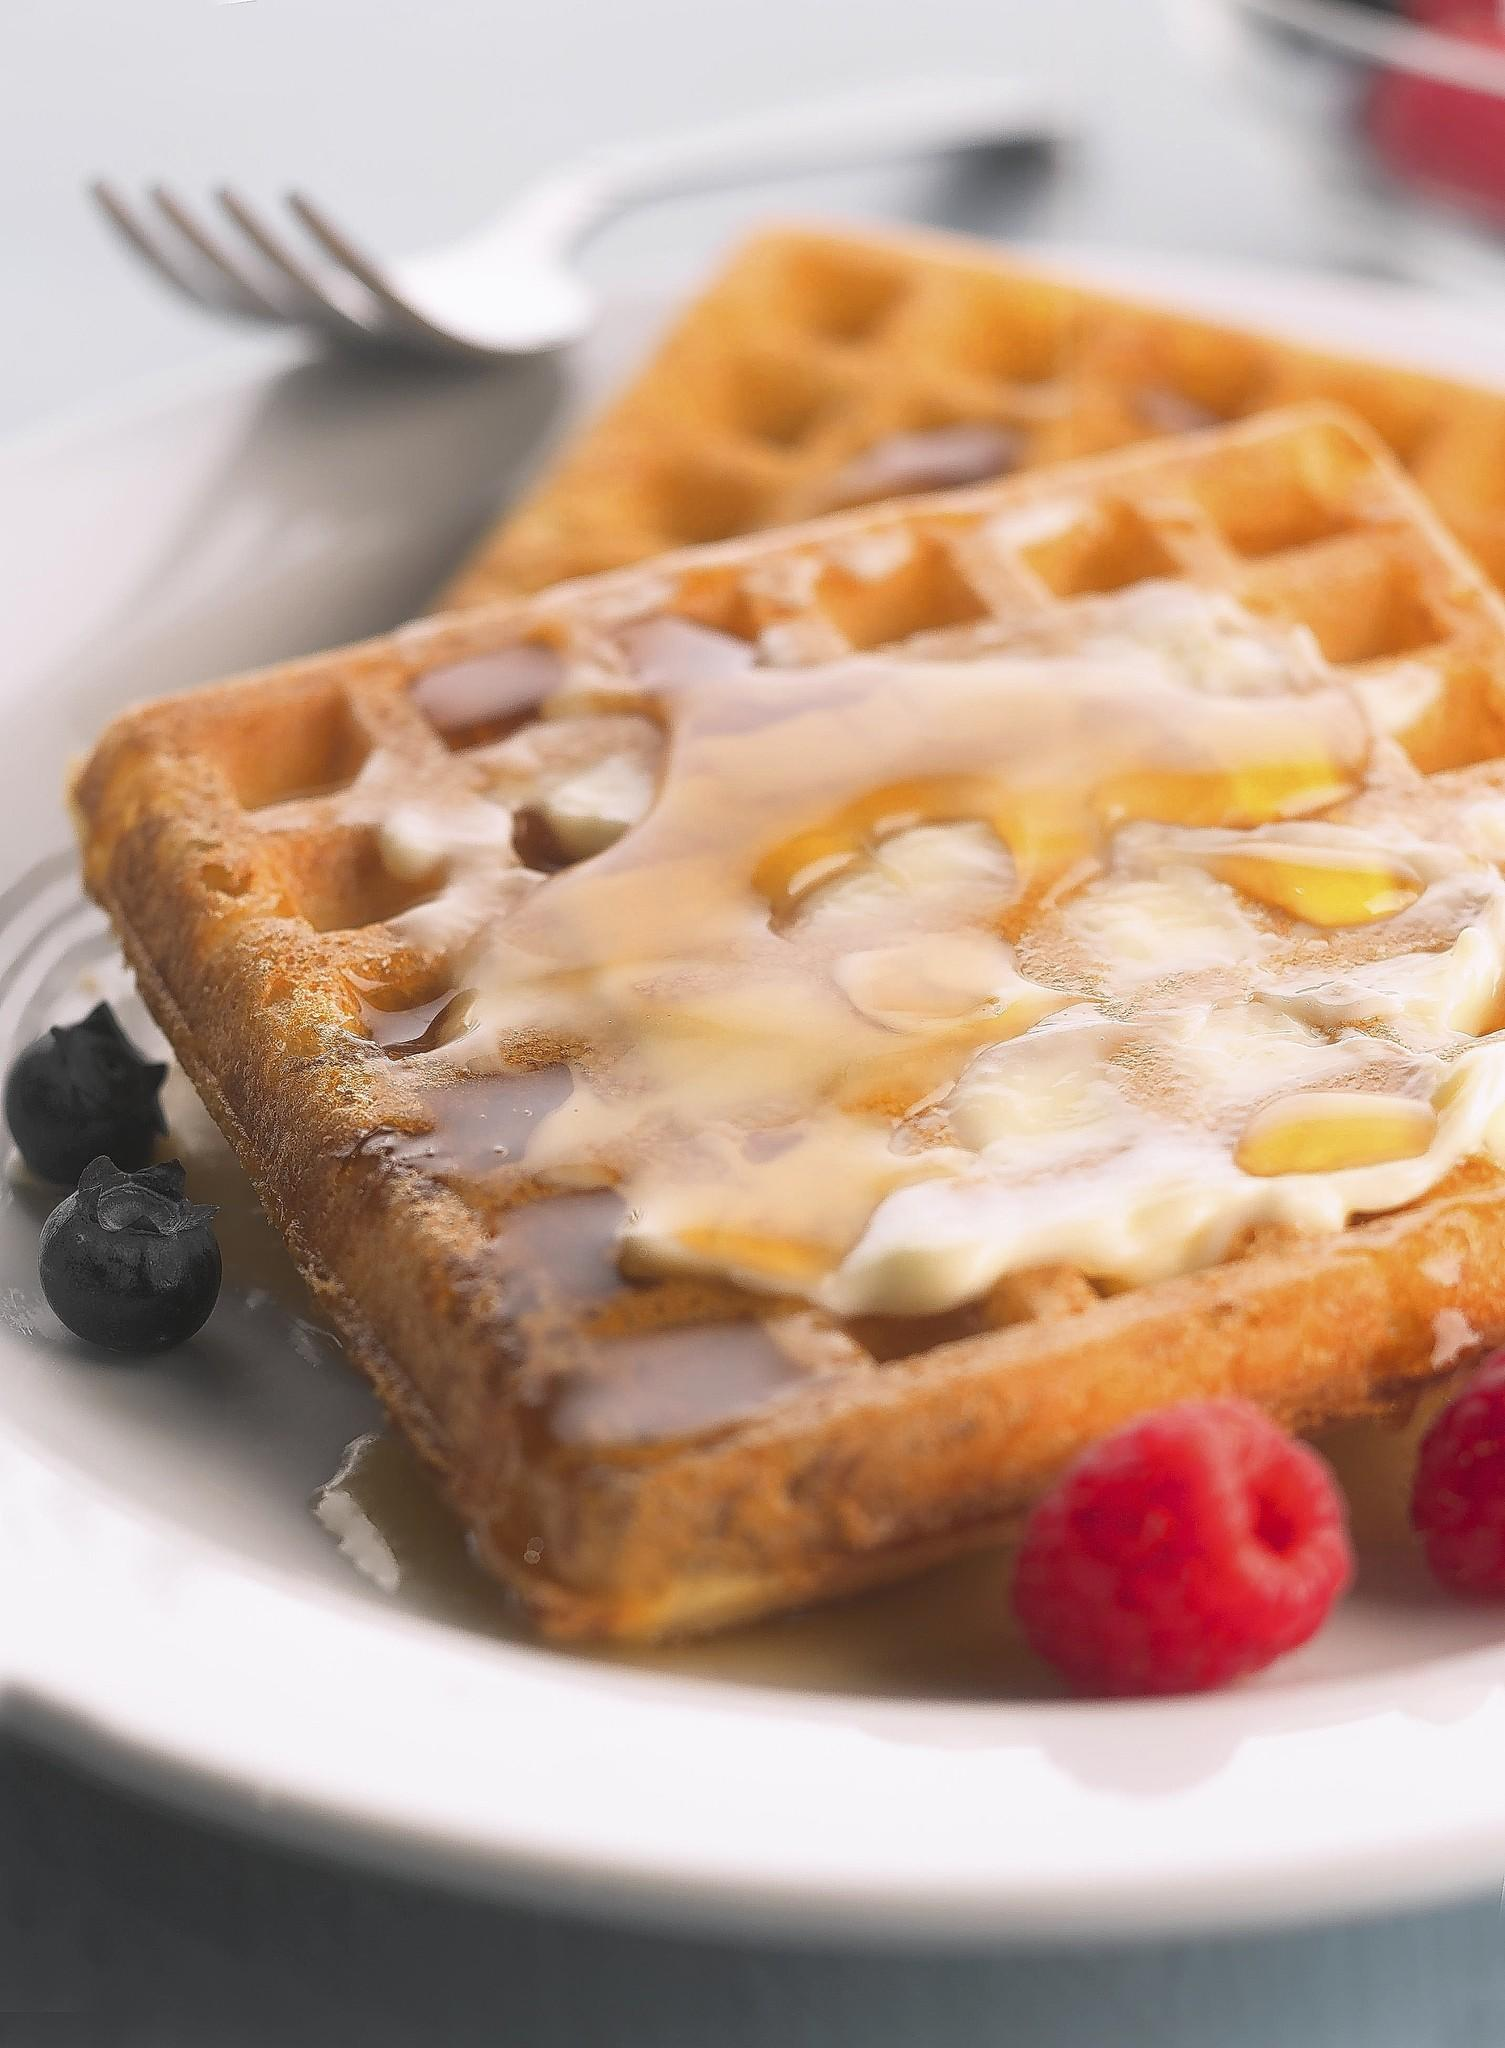 Waffles are great for breakfast, lunch or dinner.